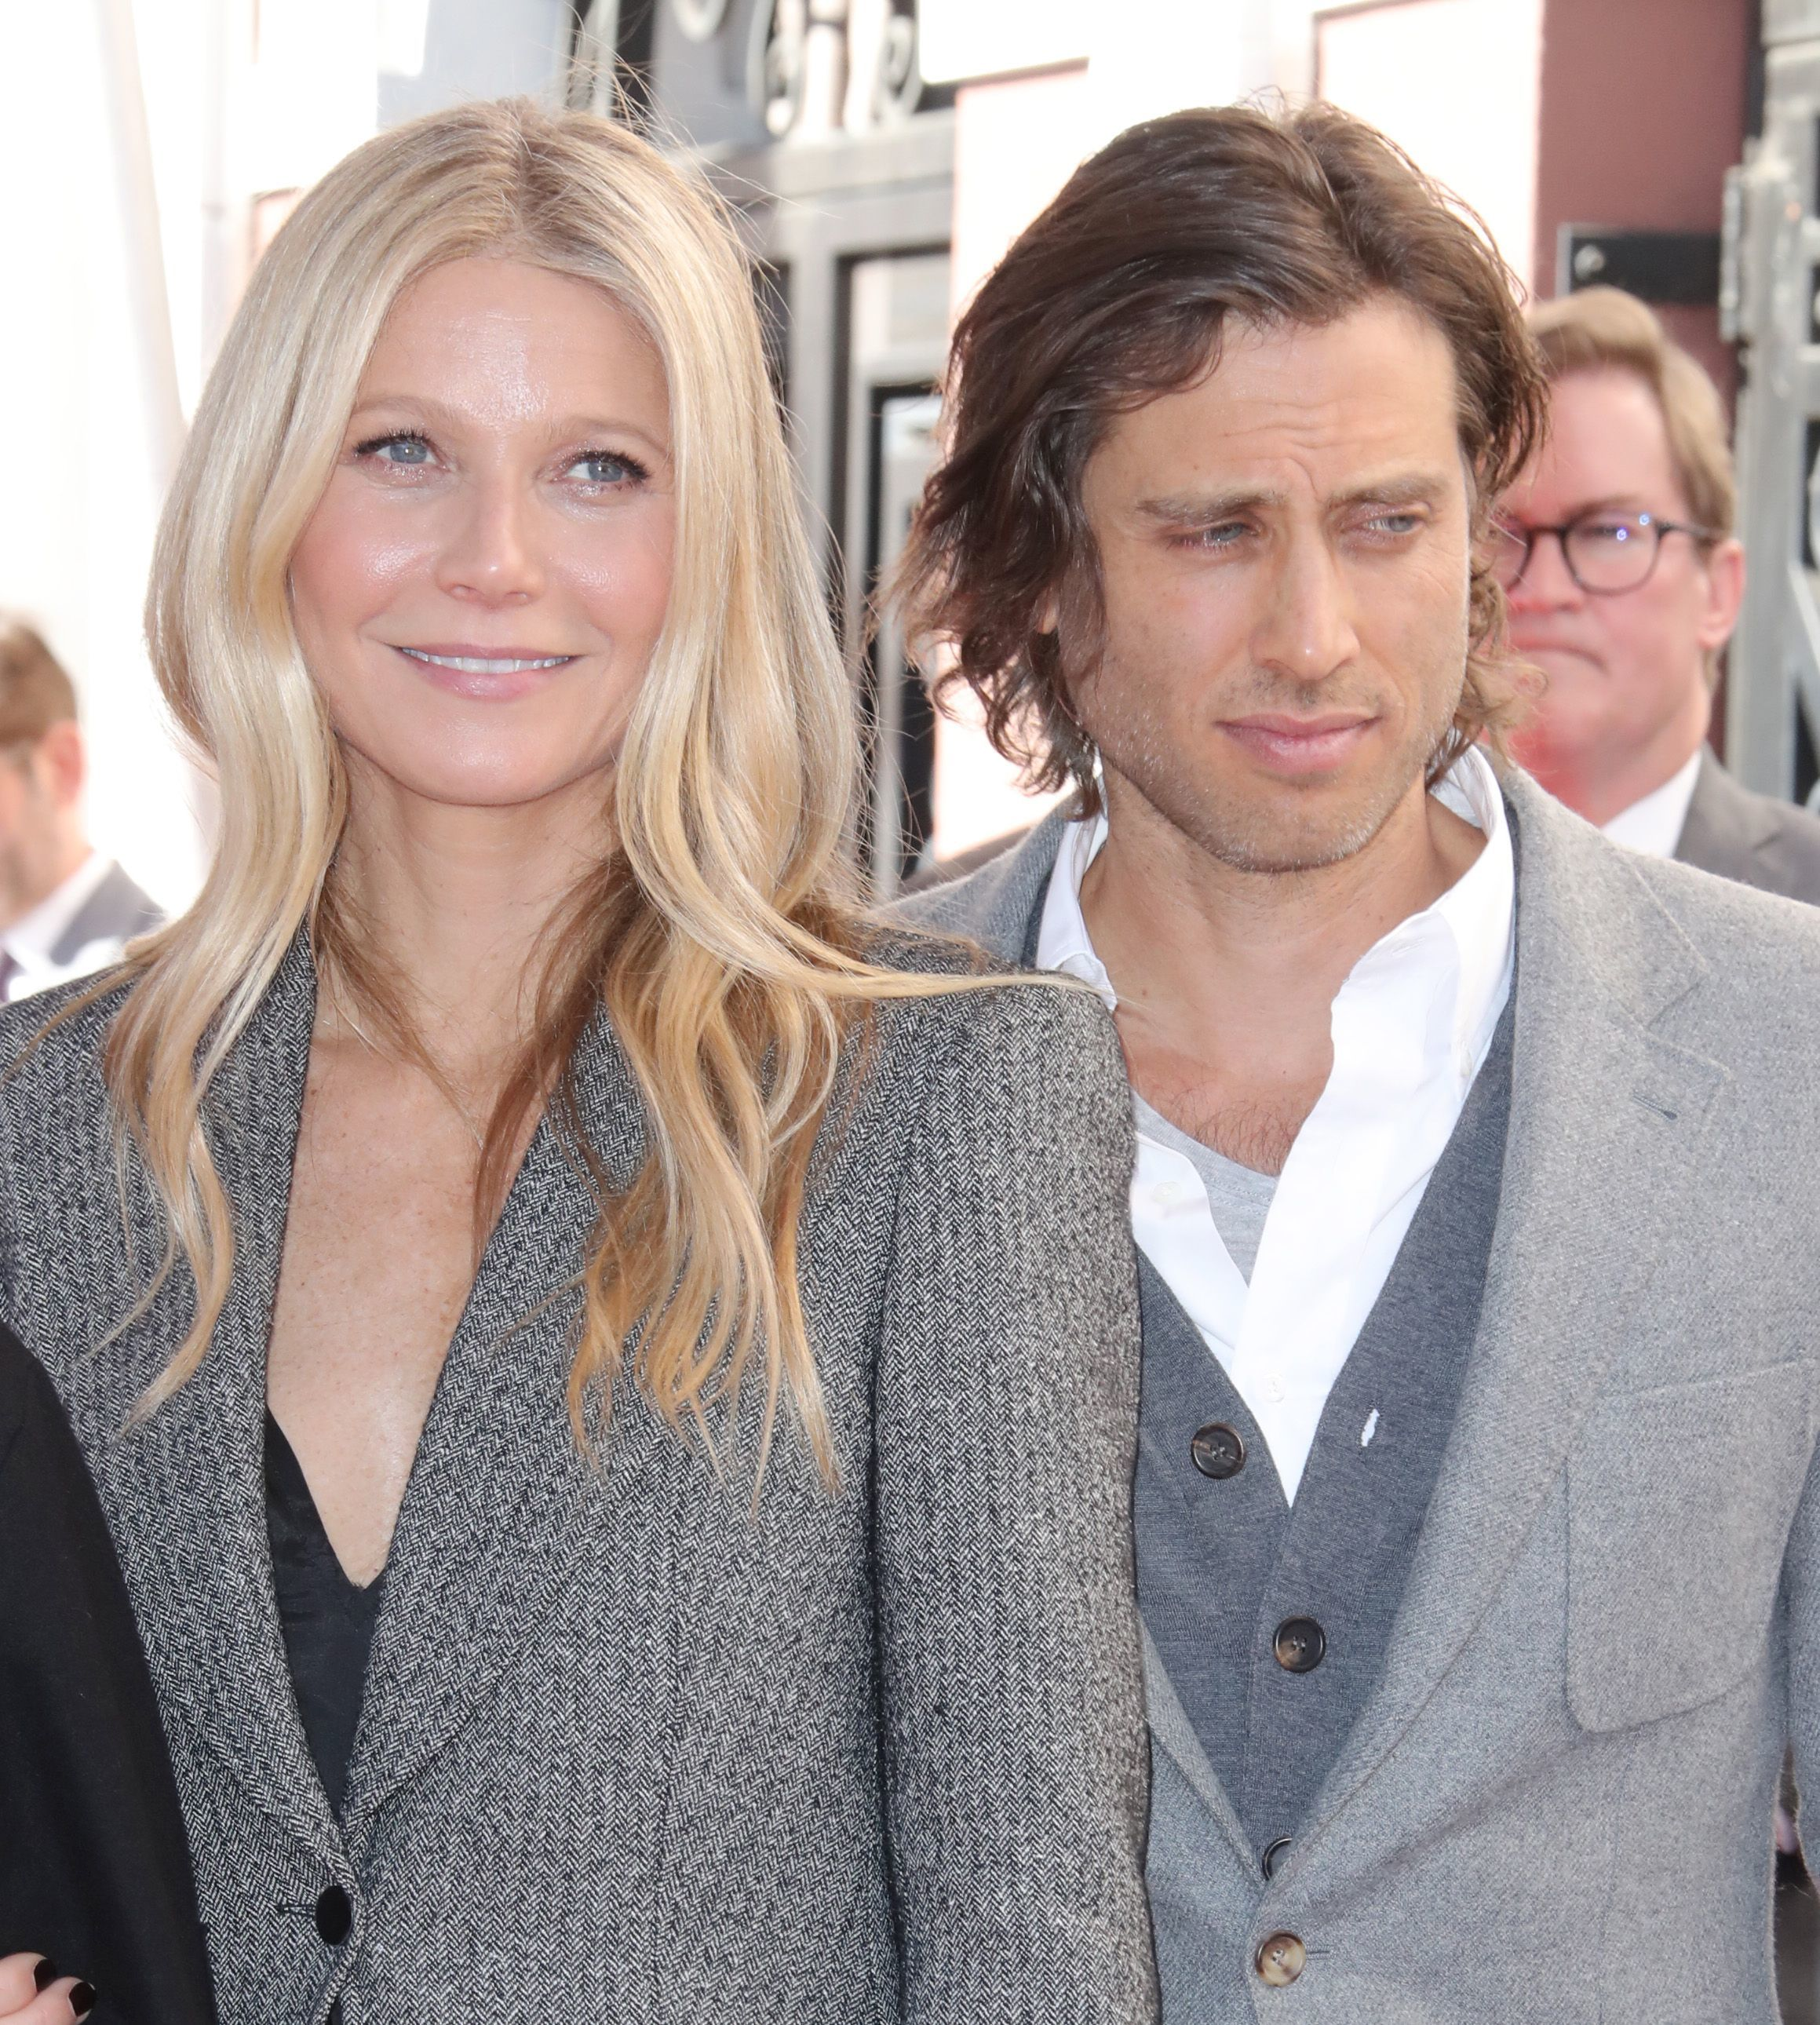 Gwyneth Paltrow and Brad Falchuk attend Ryan Murphy's Hollywood Walk of Fame ceremony on Dec. 4, 2018.